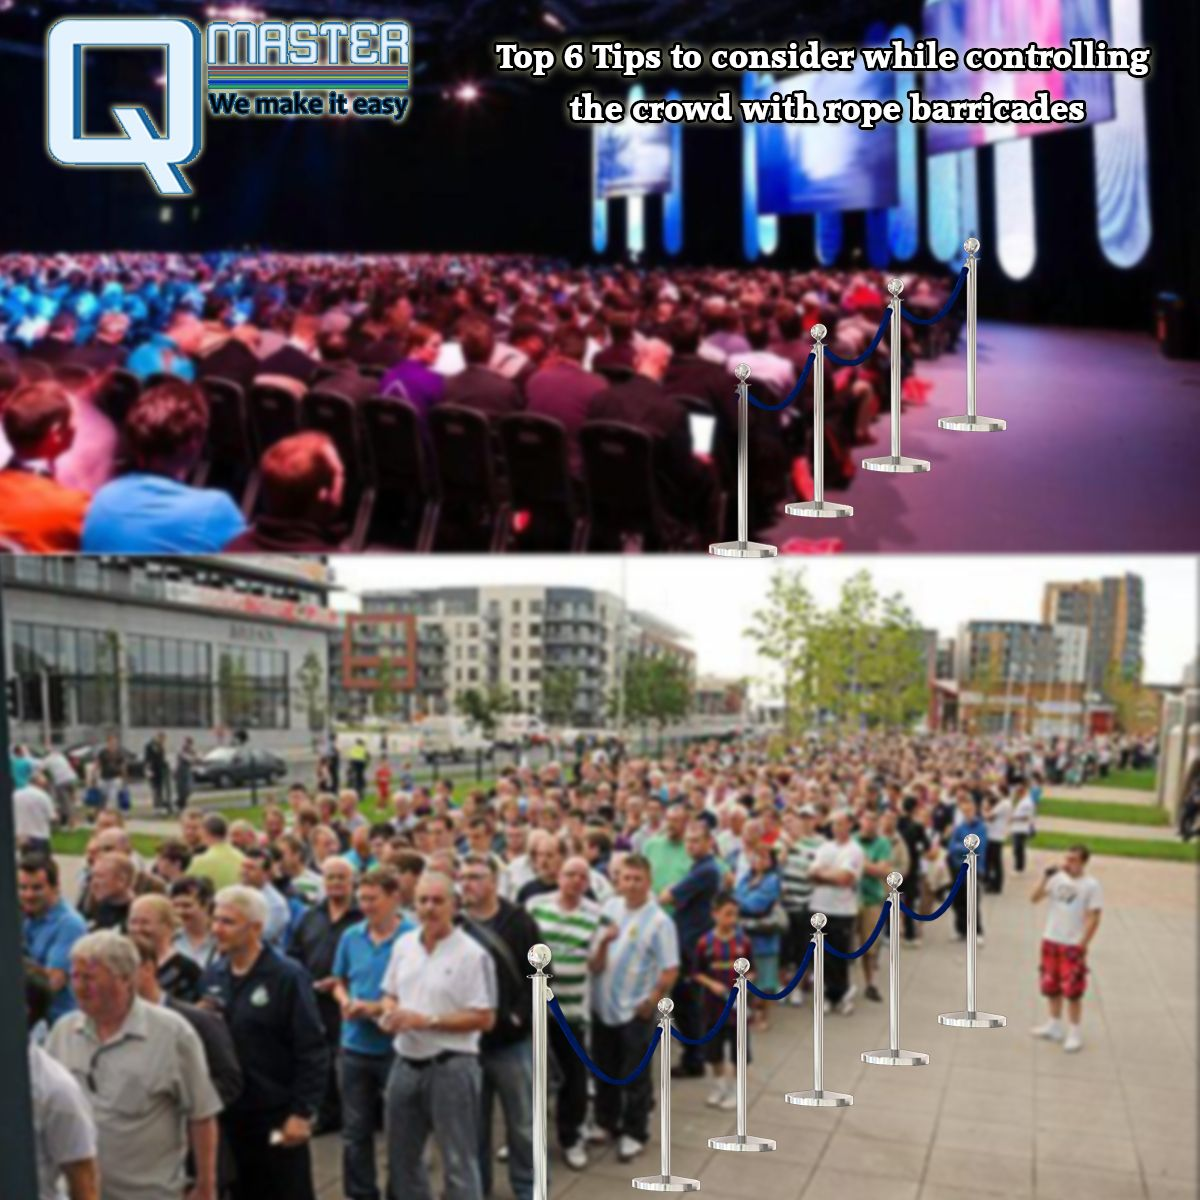 Top 6 Tips to consider while controlling the crowd with